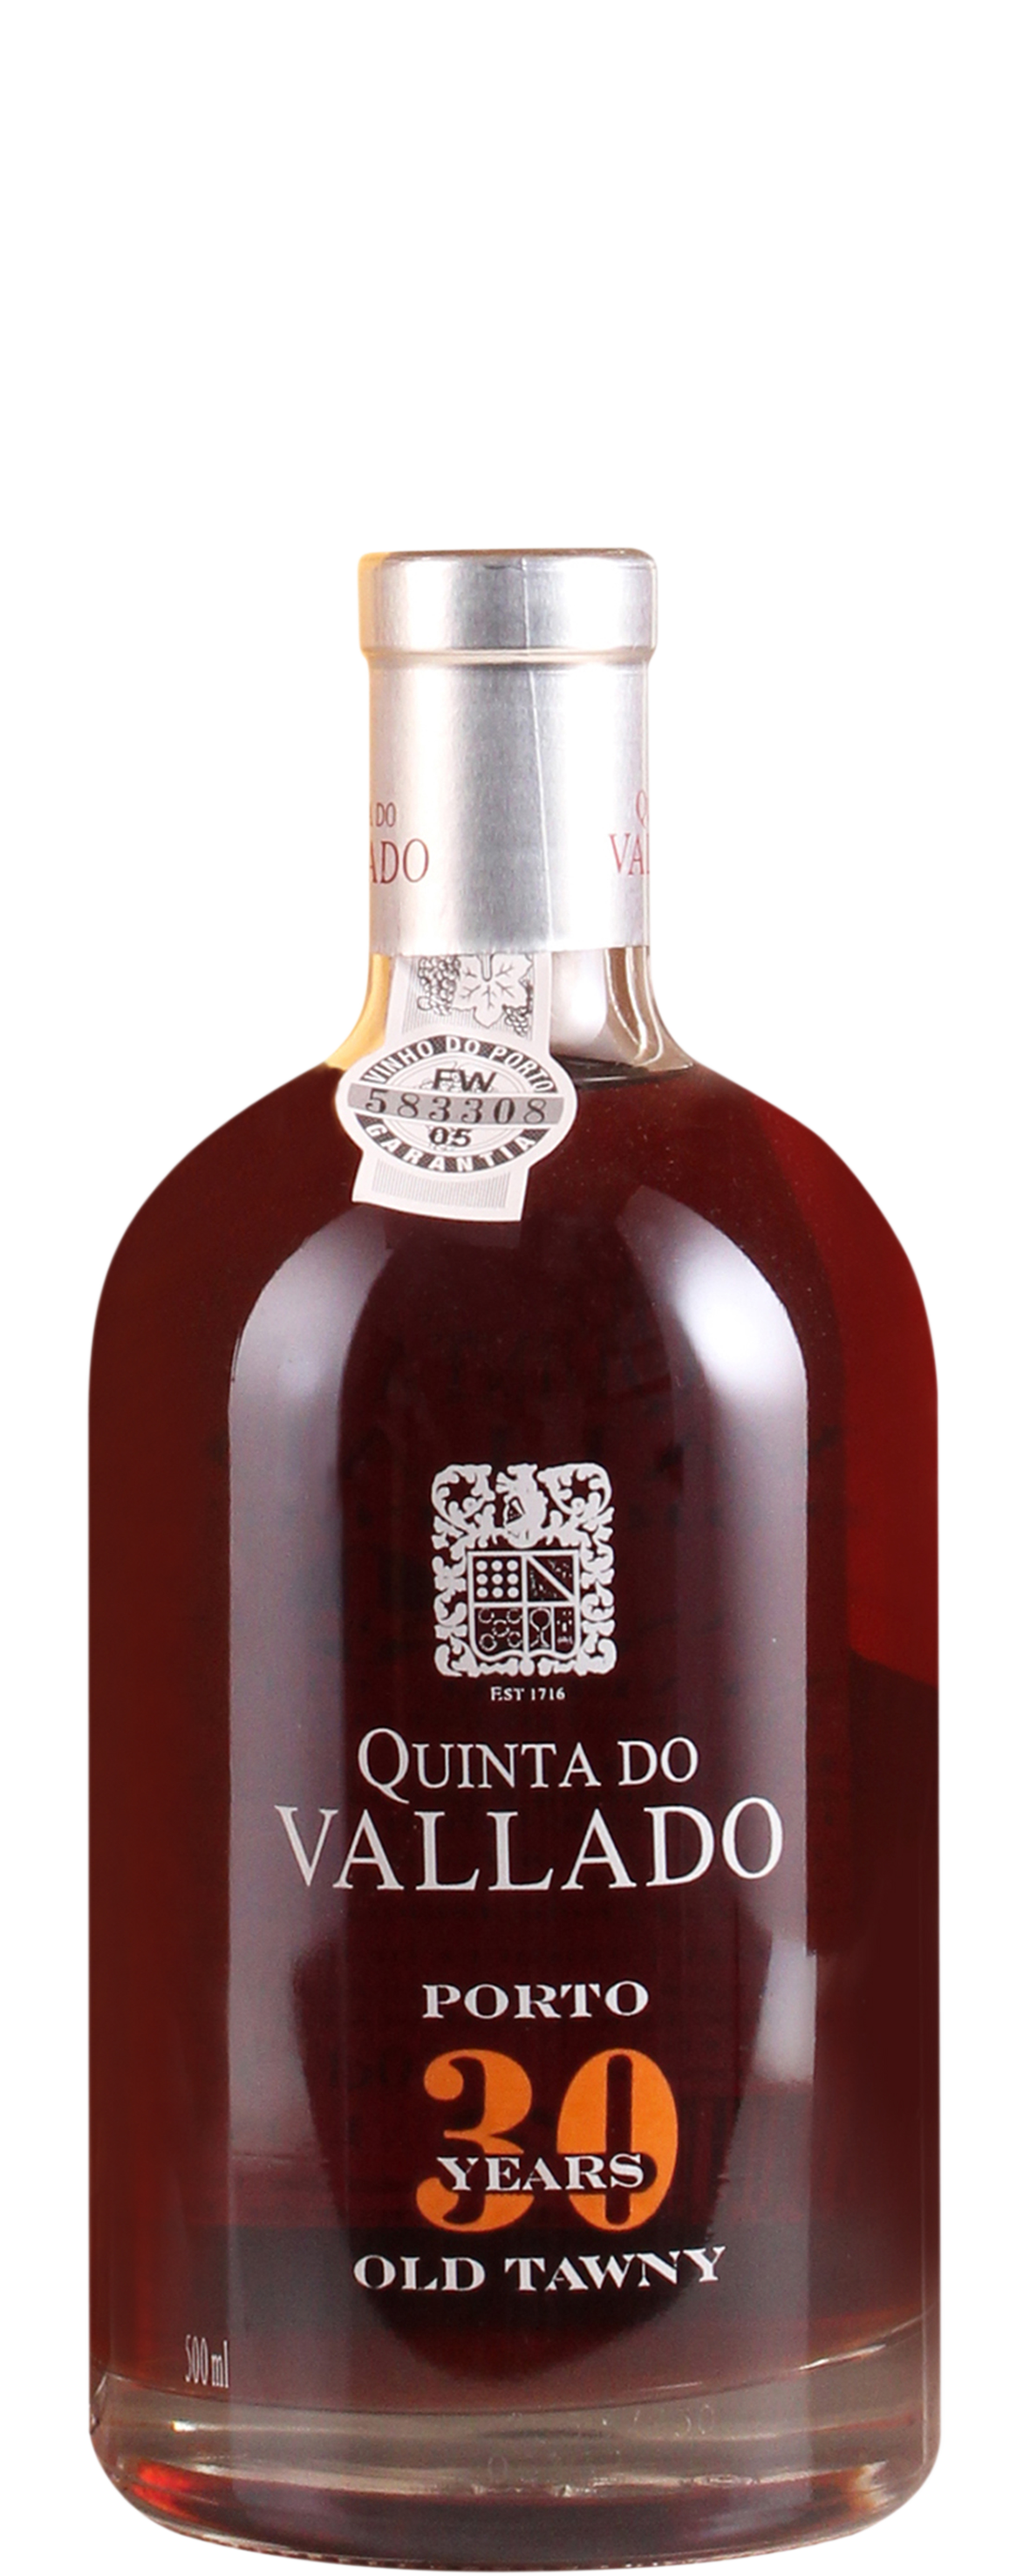 30-years Old Tawny Port, 19.5% vol.